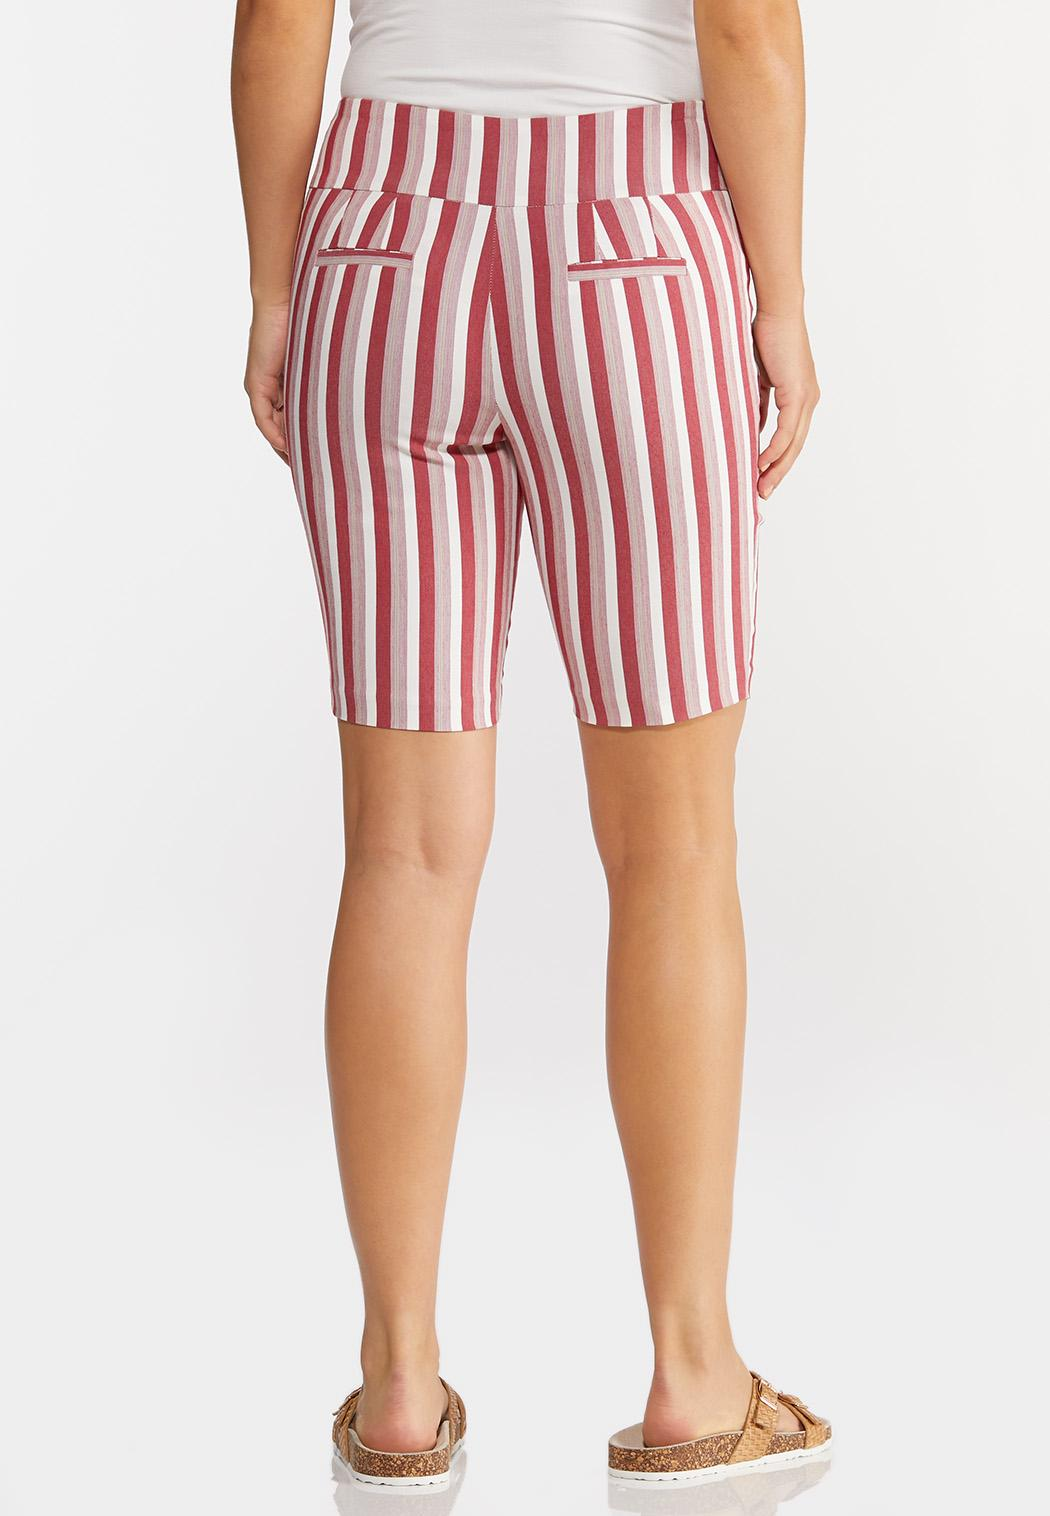 Chili Stripe Bermuda Shorts (Item #44291424)